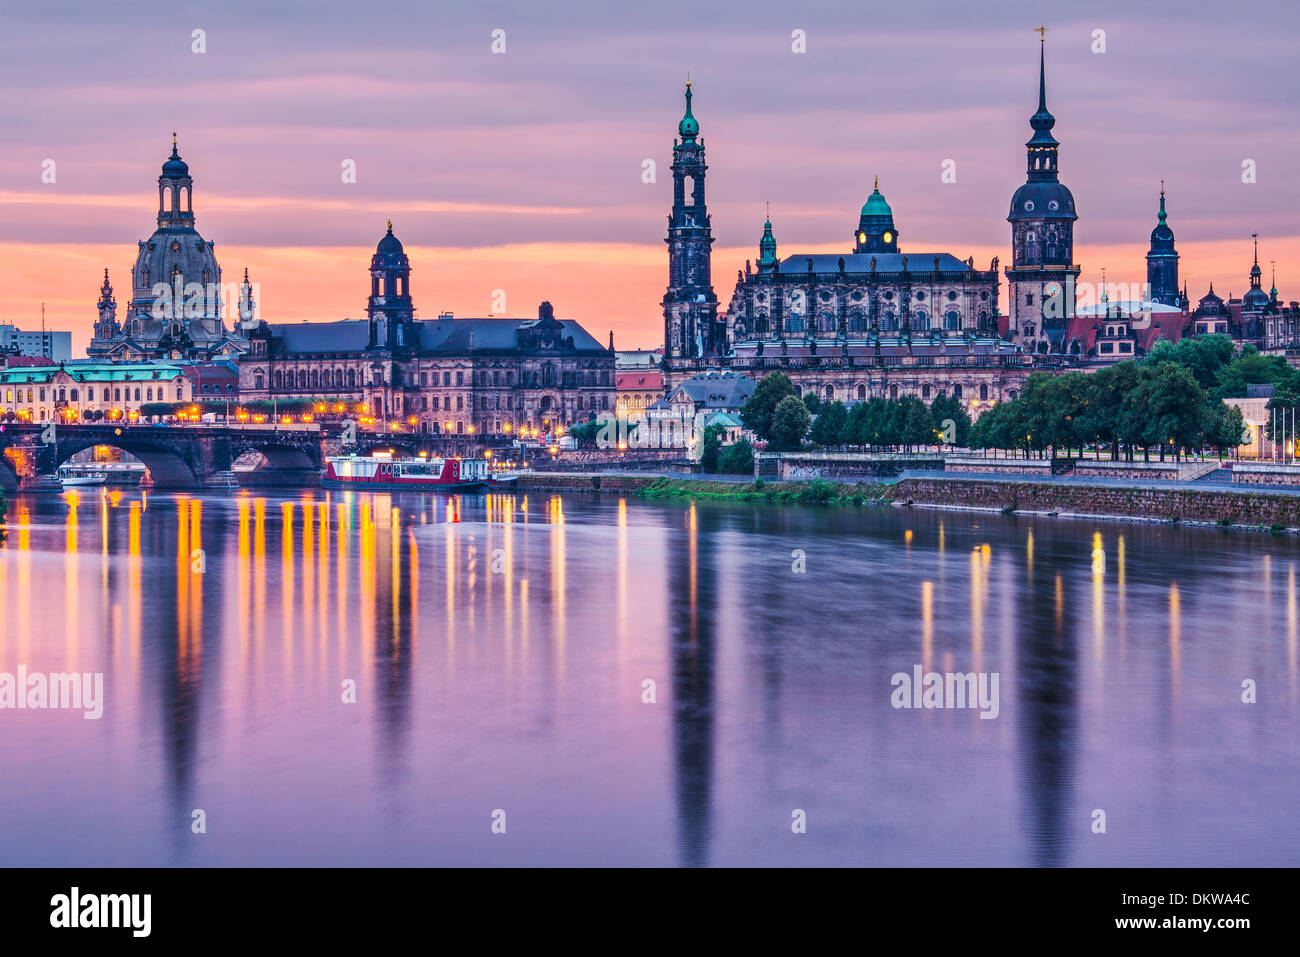 Dresden, Germany above the Elbe River at dawn. Stock Photo